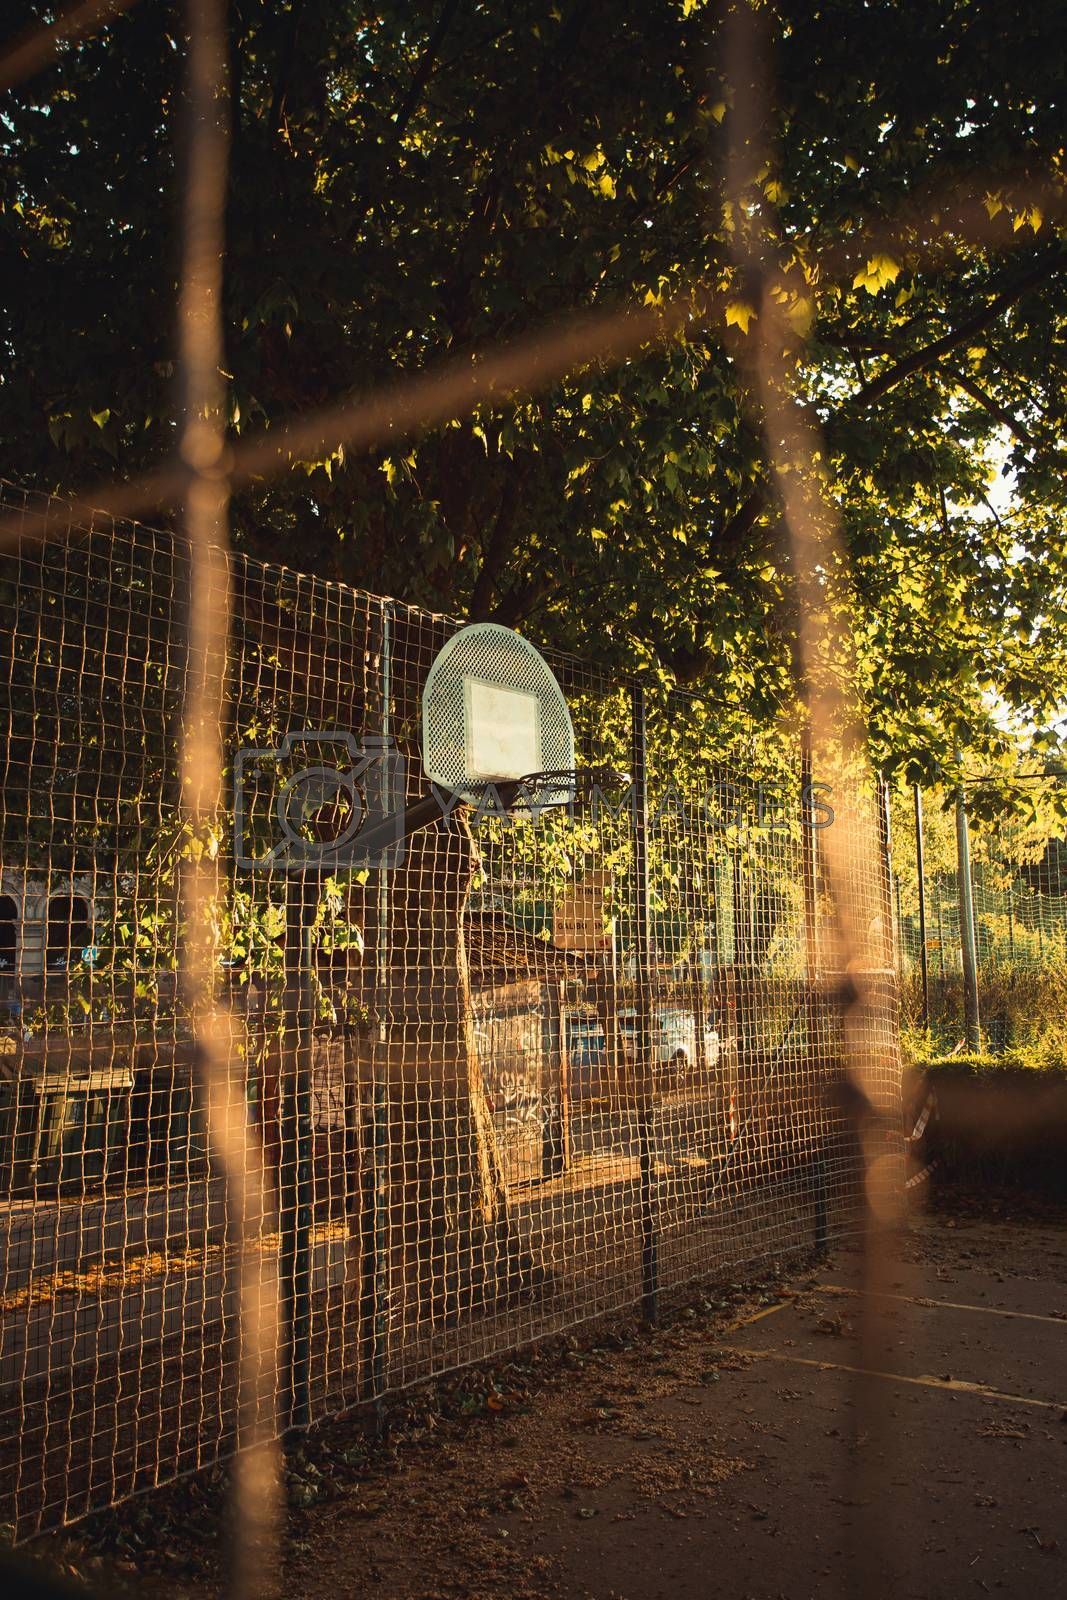 A close up of the basket from the fence in the court during a sunset